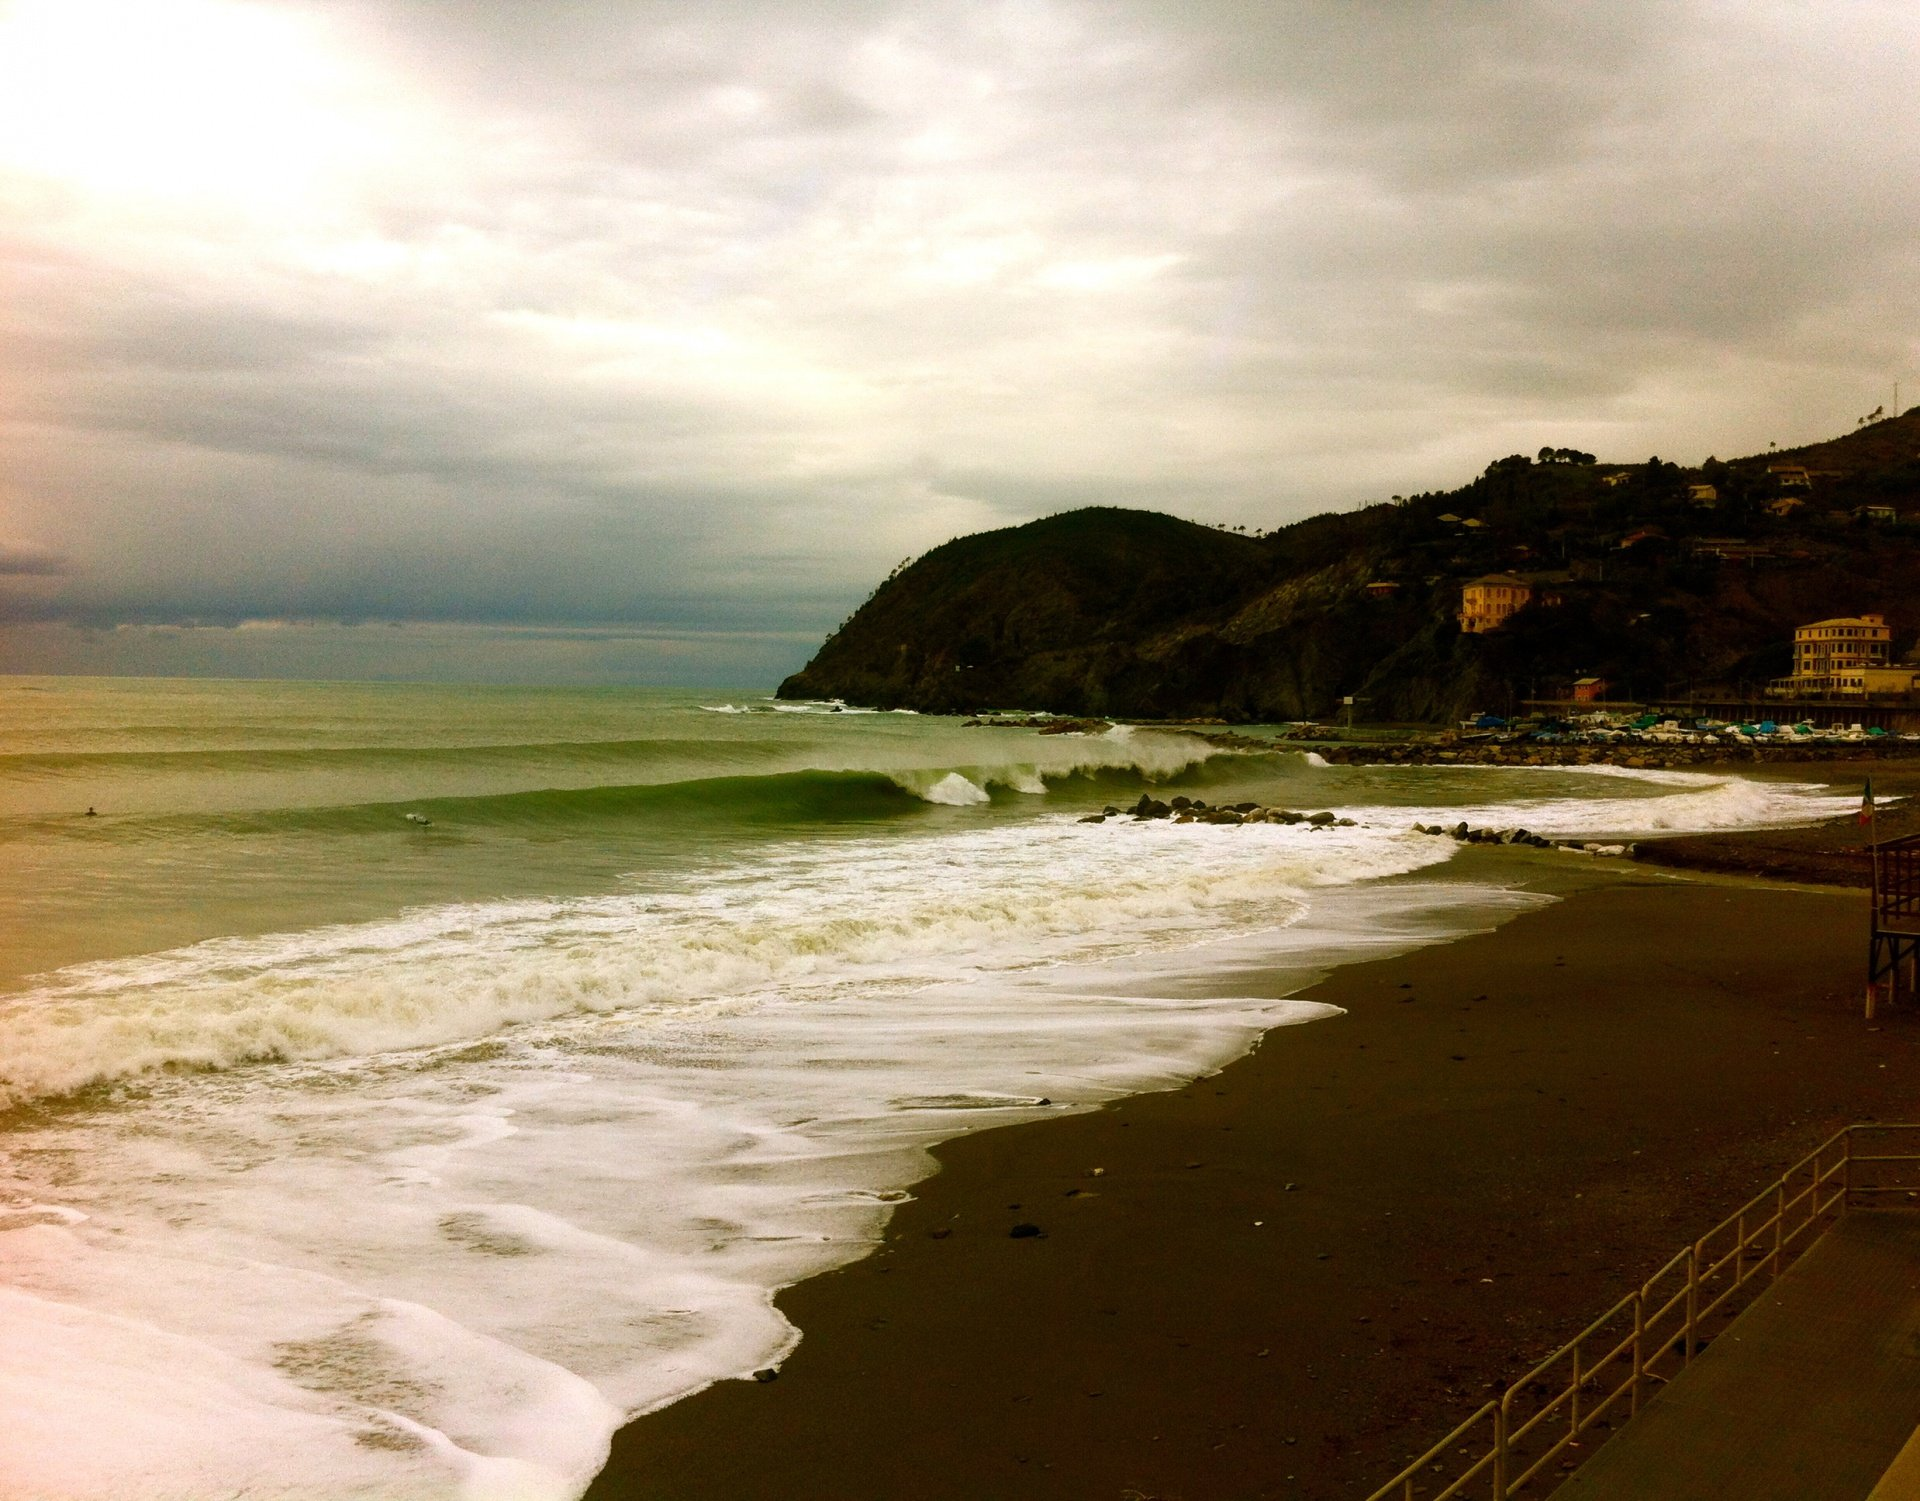 Nicolas Walker's photo of Levanto